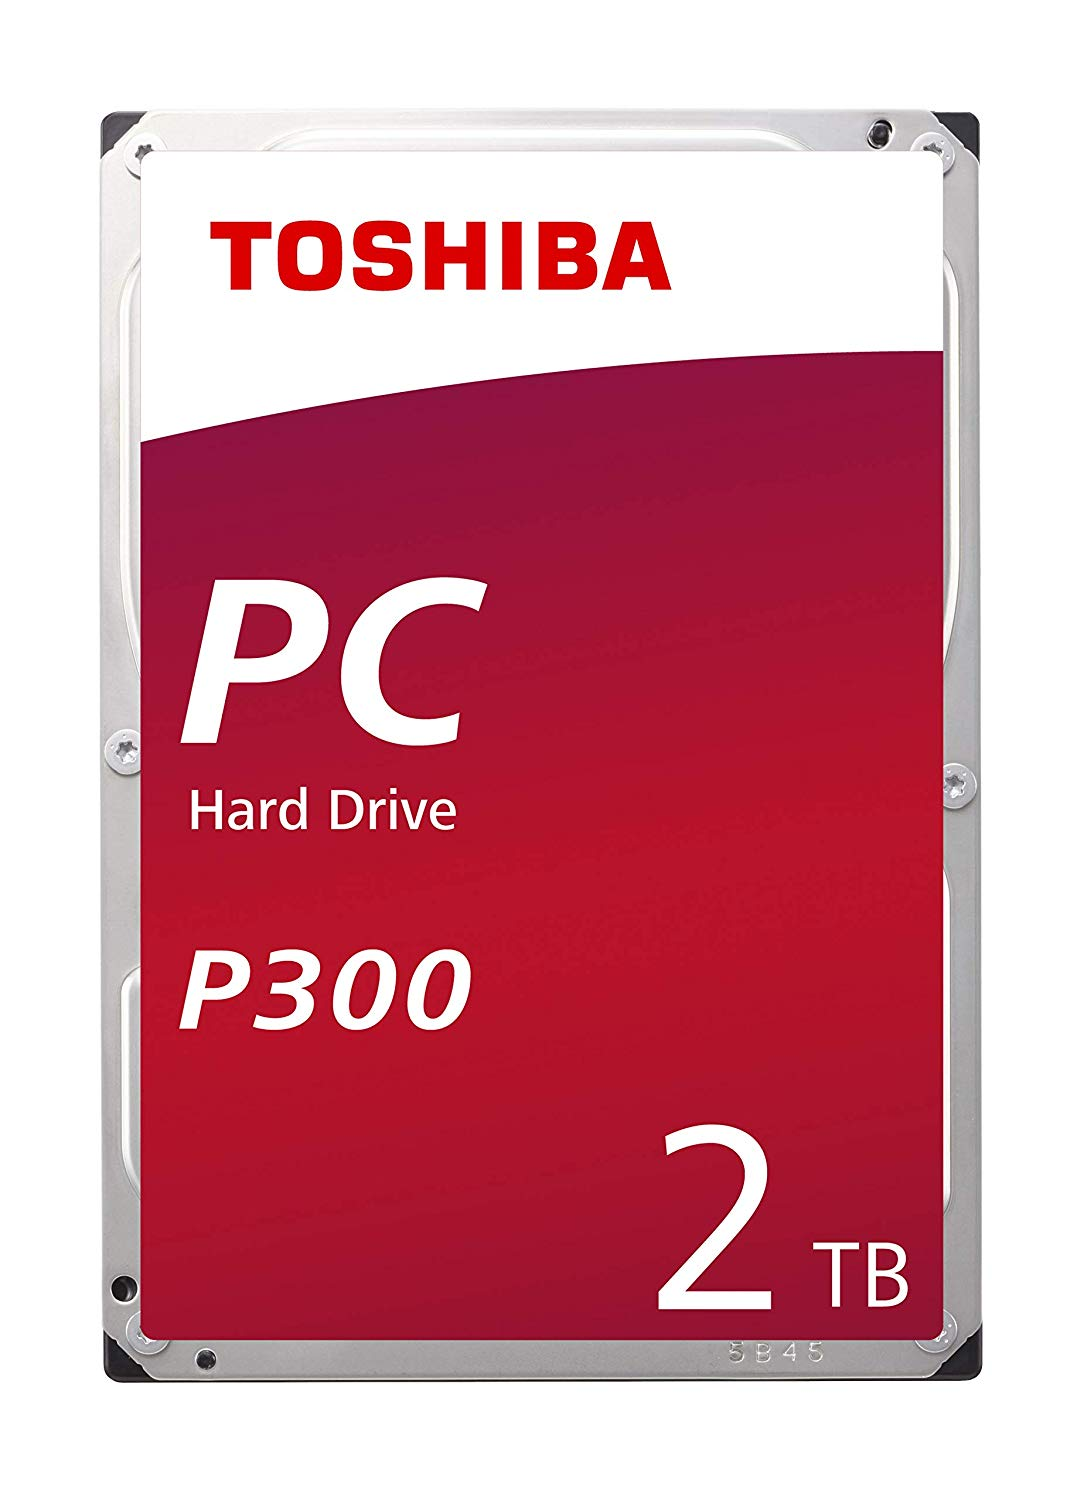 Toshiba P300 2TB 7200RPM 64MB 3 5in SATA Hard Drive